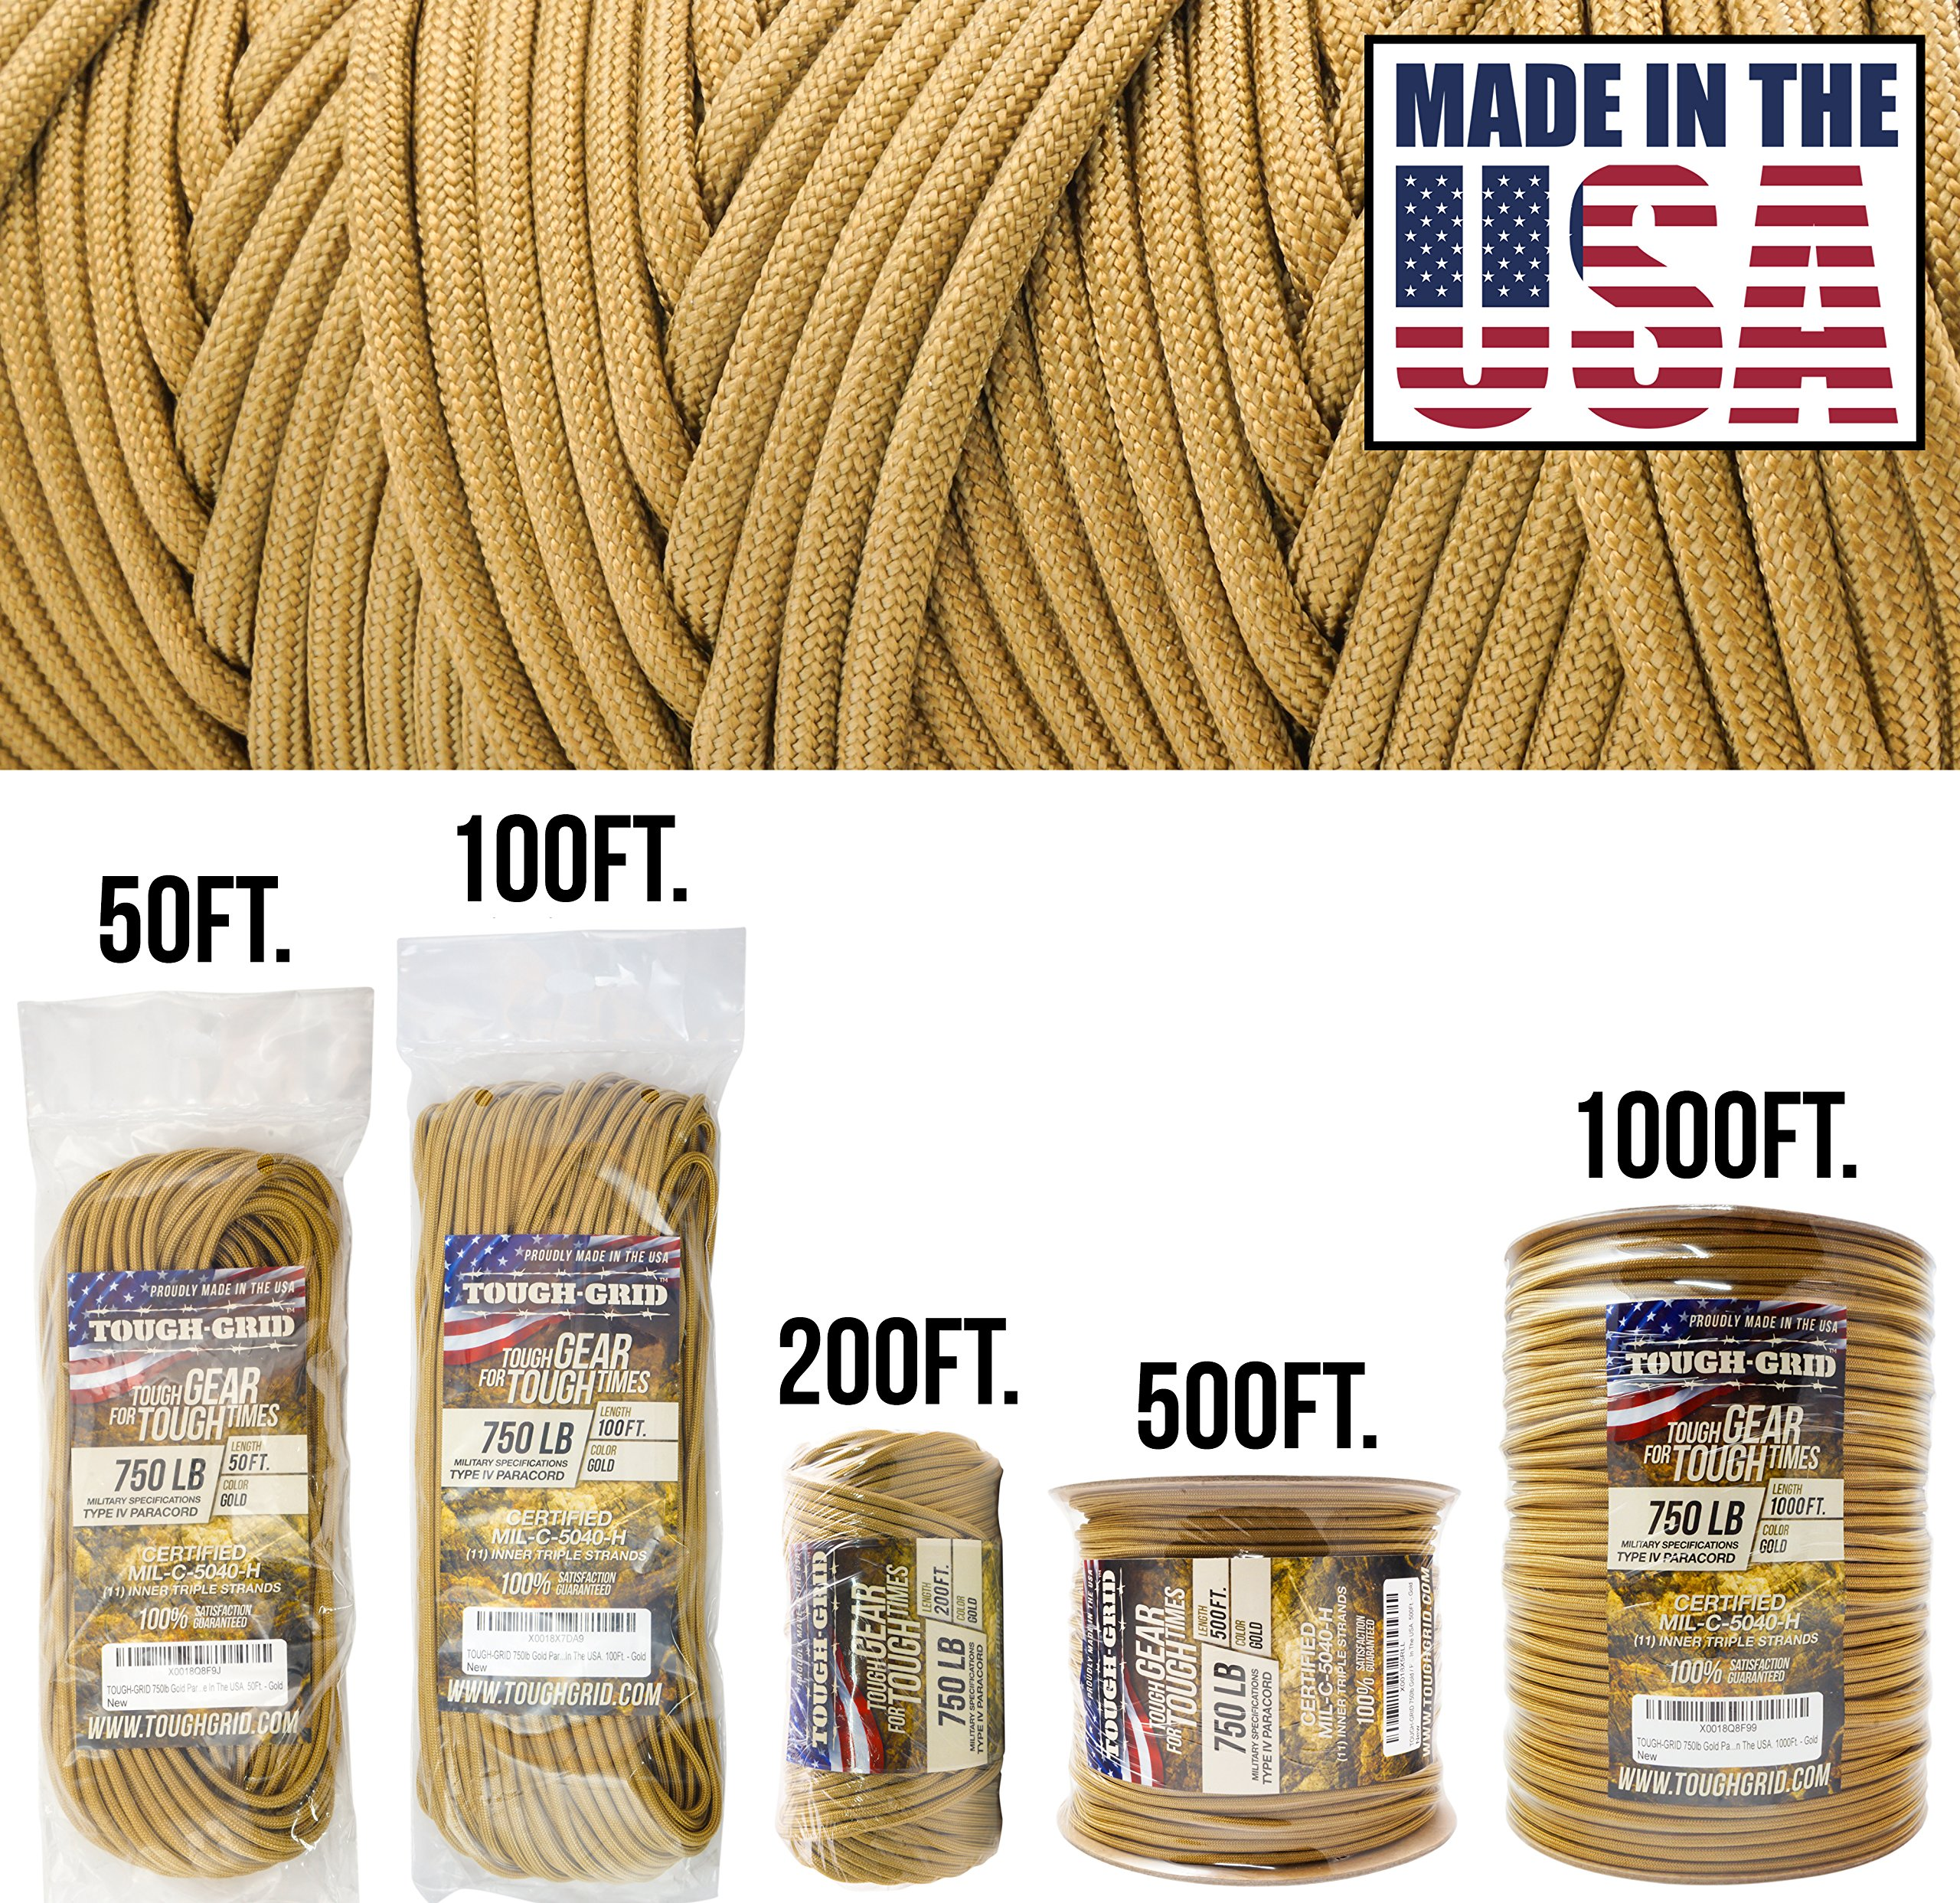 TOUGH-GRID 750lb Gold Paracord/Parachute Cord - Genuine Mil Spec Type IV 750lb Paracord Used by The US Military (MIl-C-5040-H) - 100% Nylon - Made in The USA. 200Ft. - Gold by TOUGH-GRID